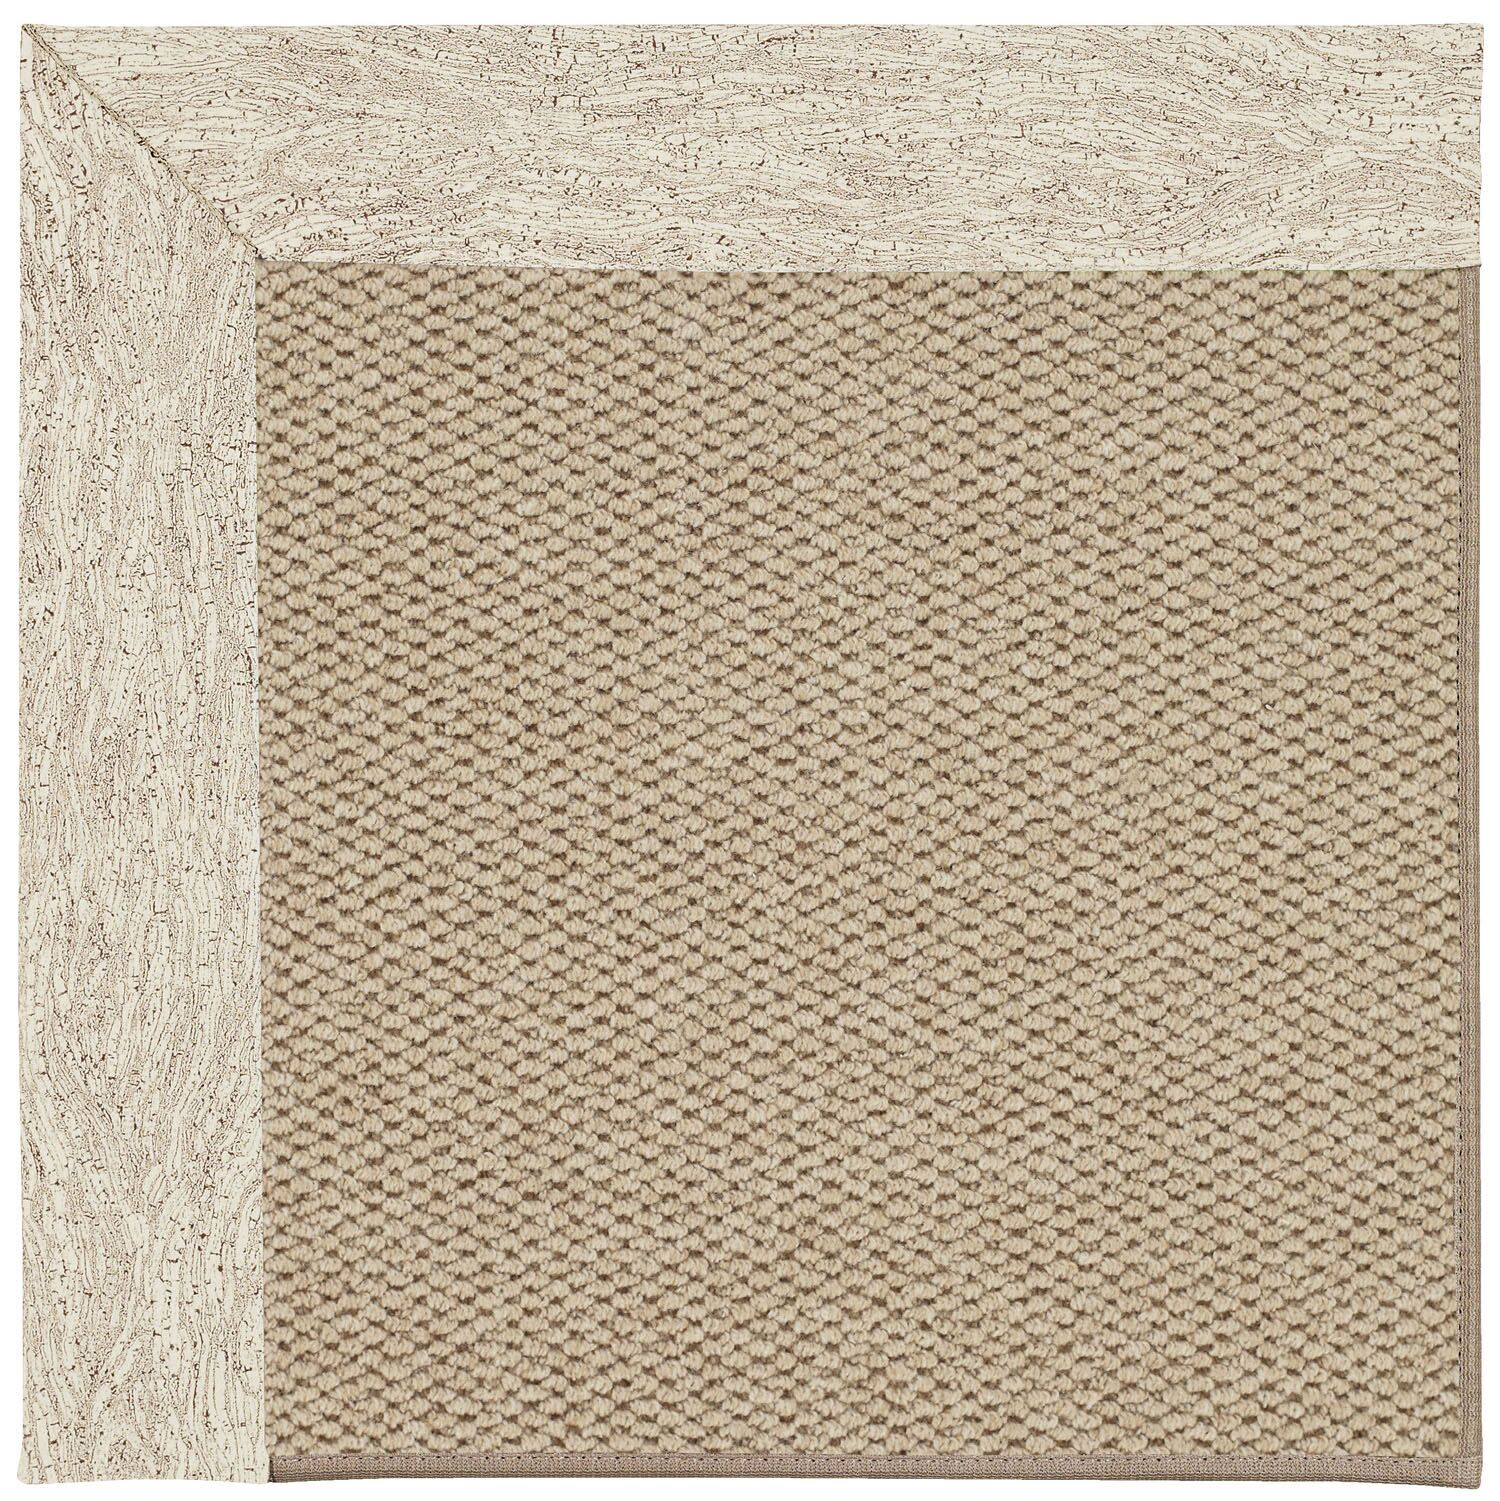 Barrett Wool Beige Area Rug Rug Size: Rectangle 5' x 8'